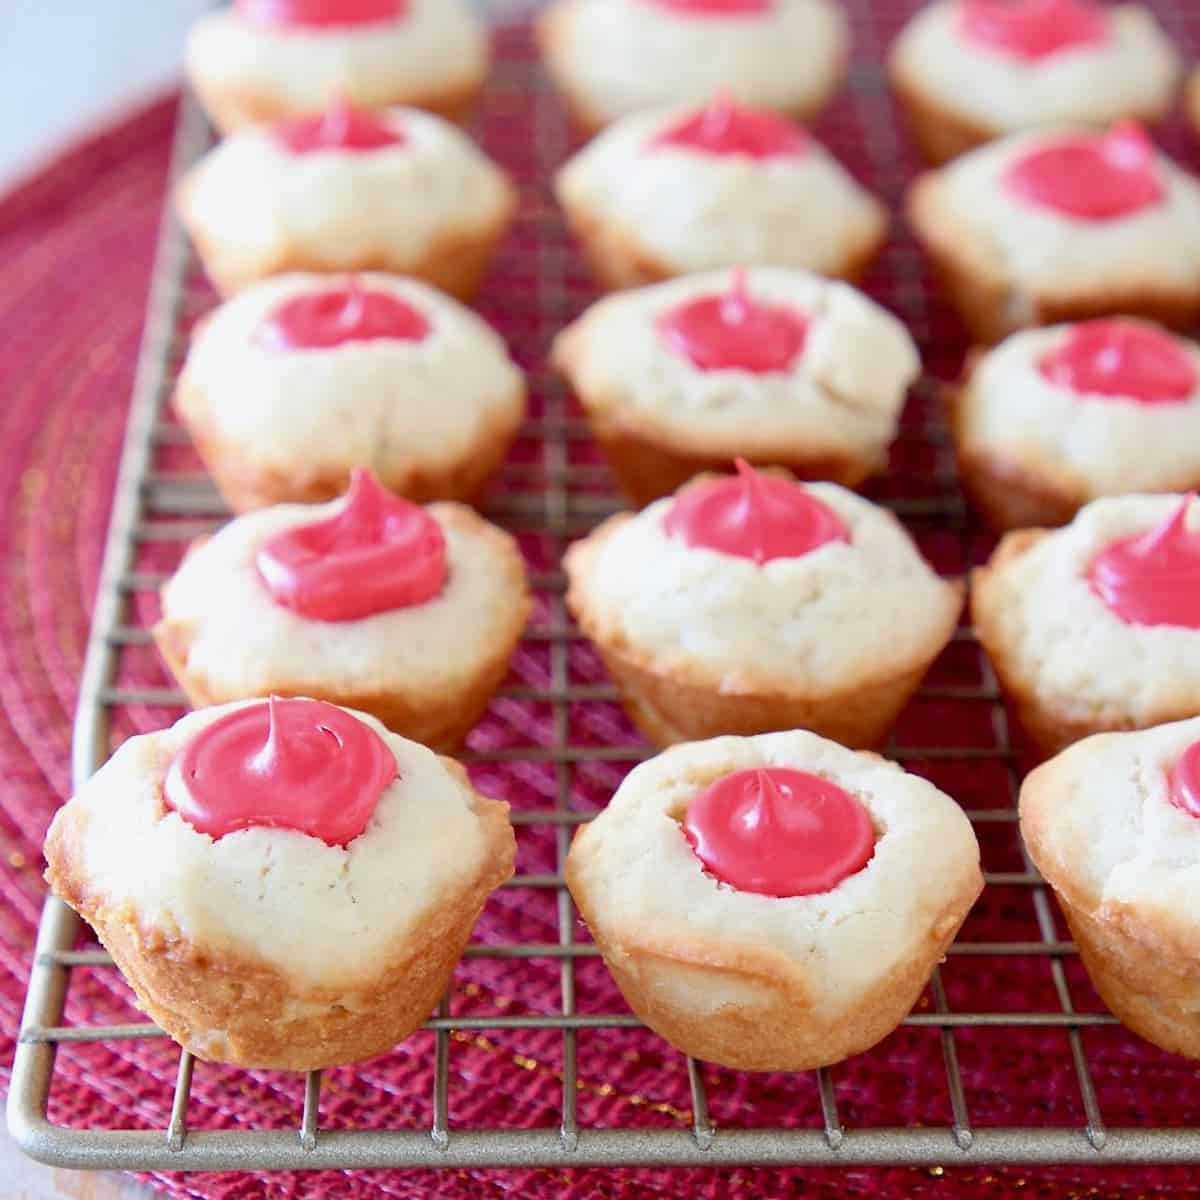 Sugar cookie cups with red frosting filling sitting on wire rack